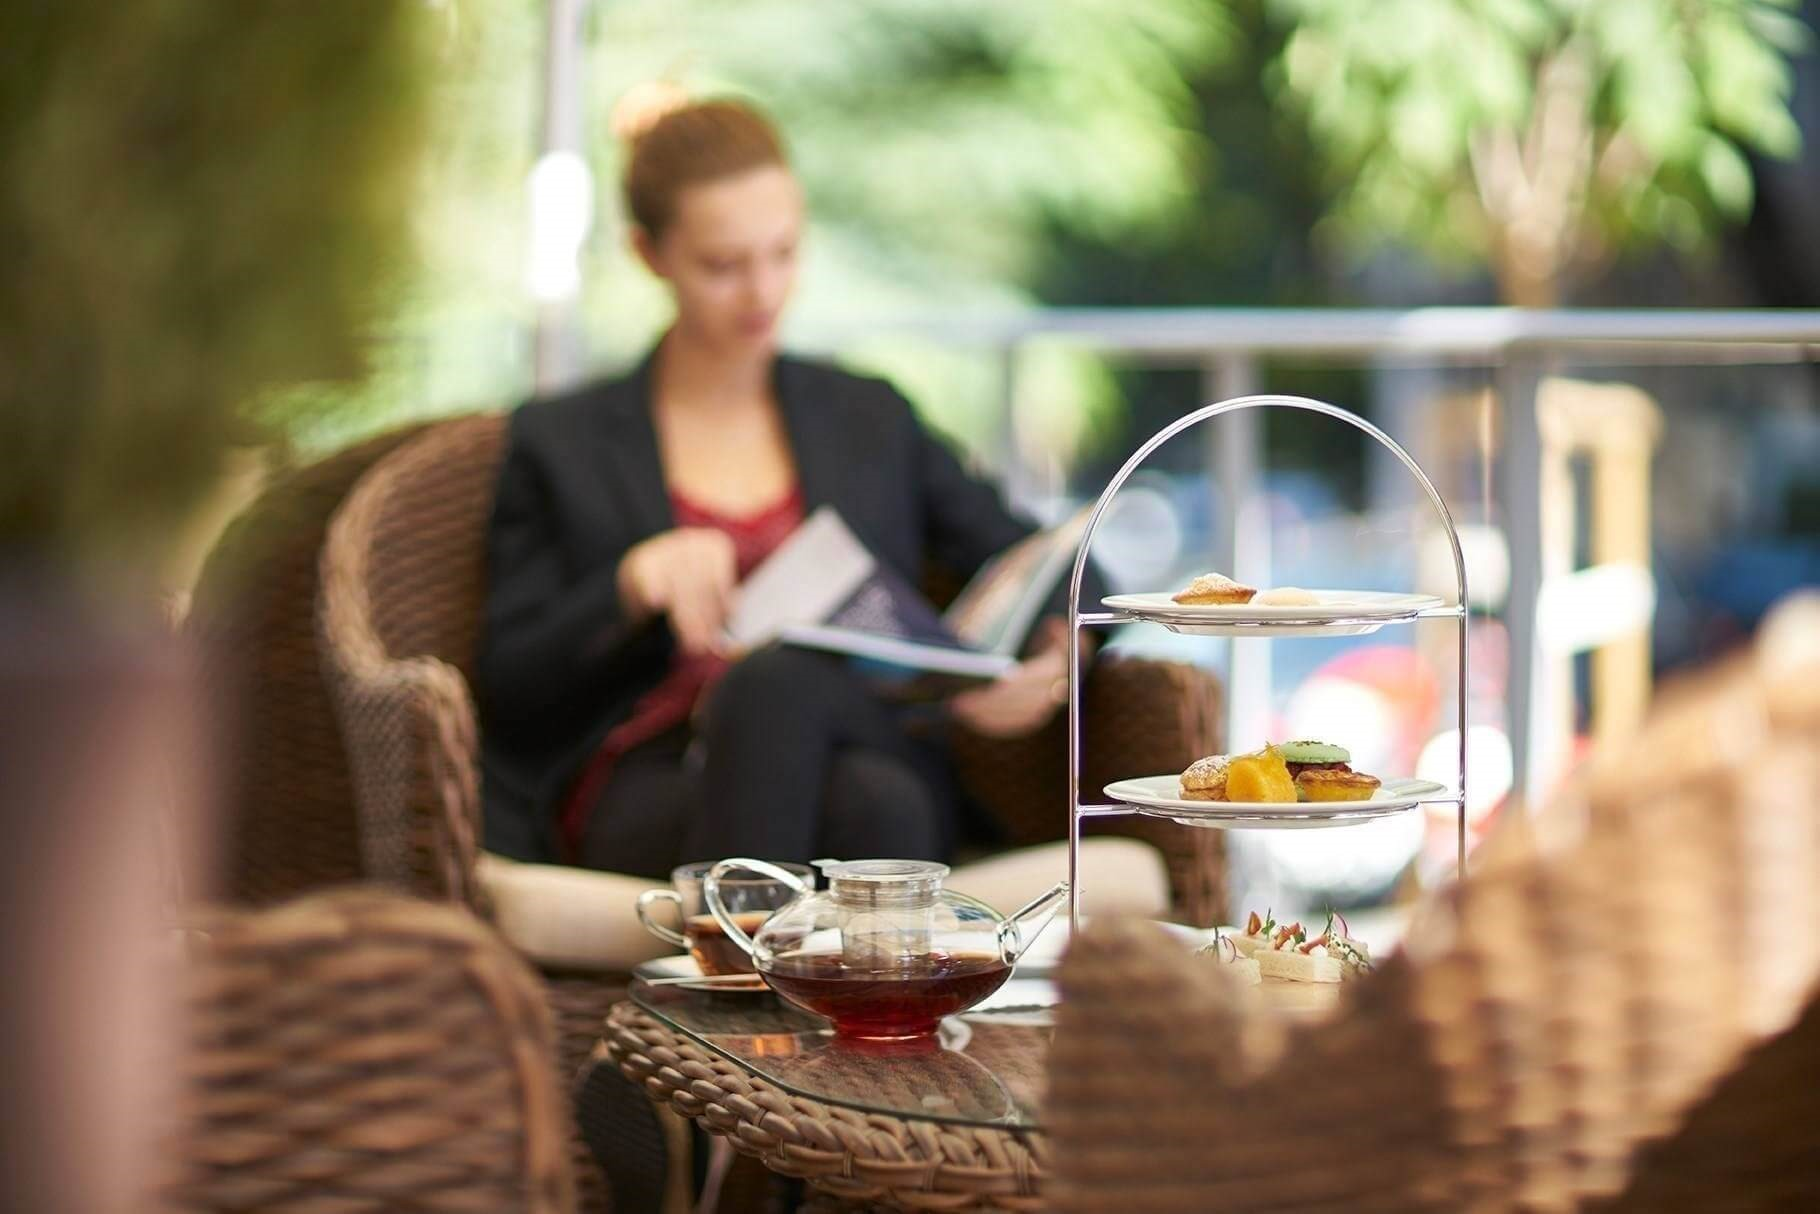 PortoBay Liberdade - Afternoon Tea